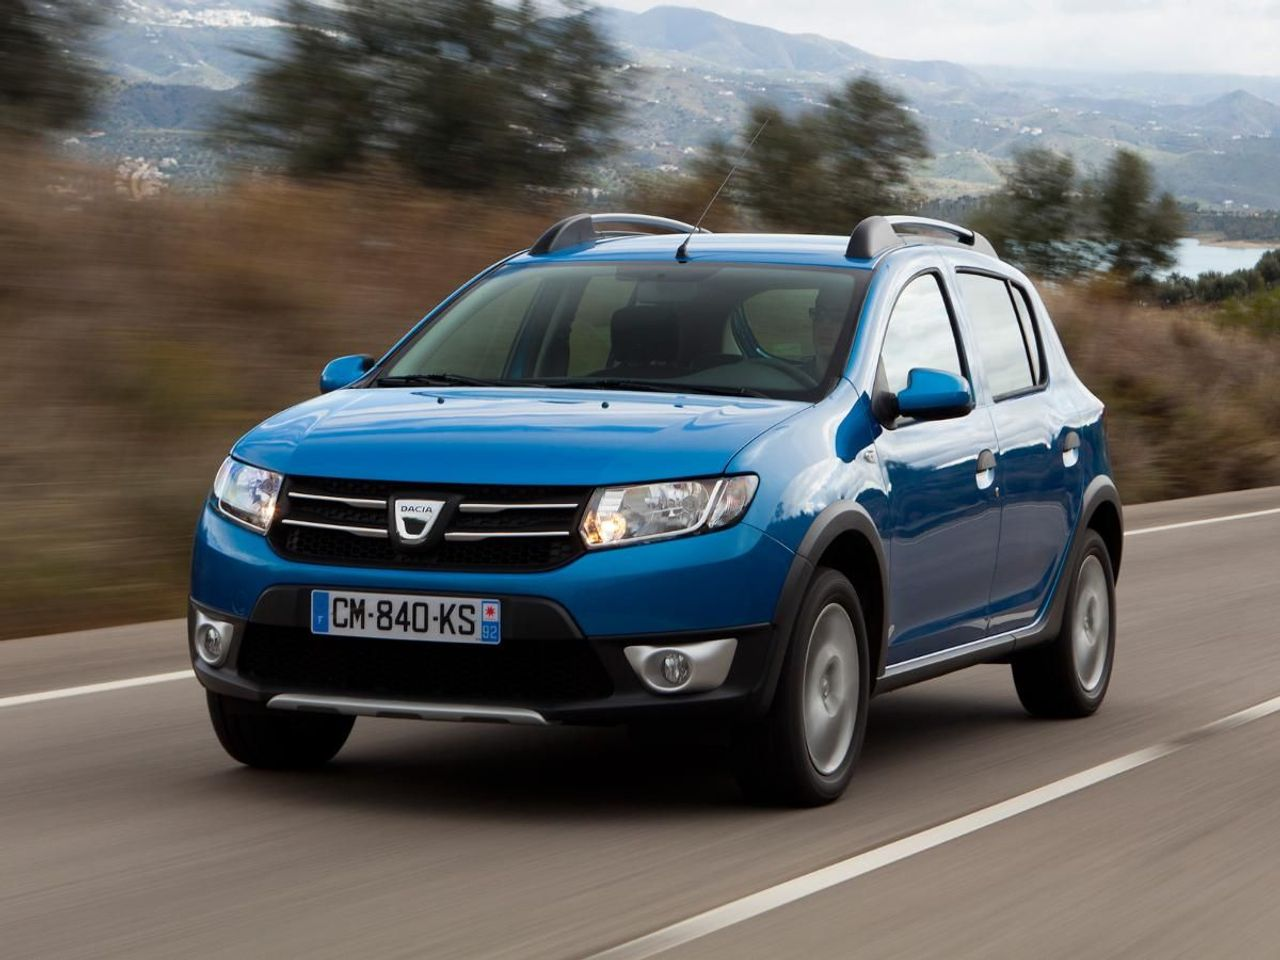 dacia sandero stepway hatchback 2013 2016 mk 1 review auto trader uk. Black Bedroom Furniture Sets. Home Design Ideas